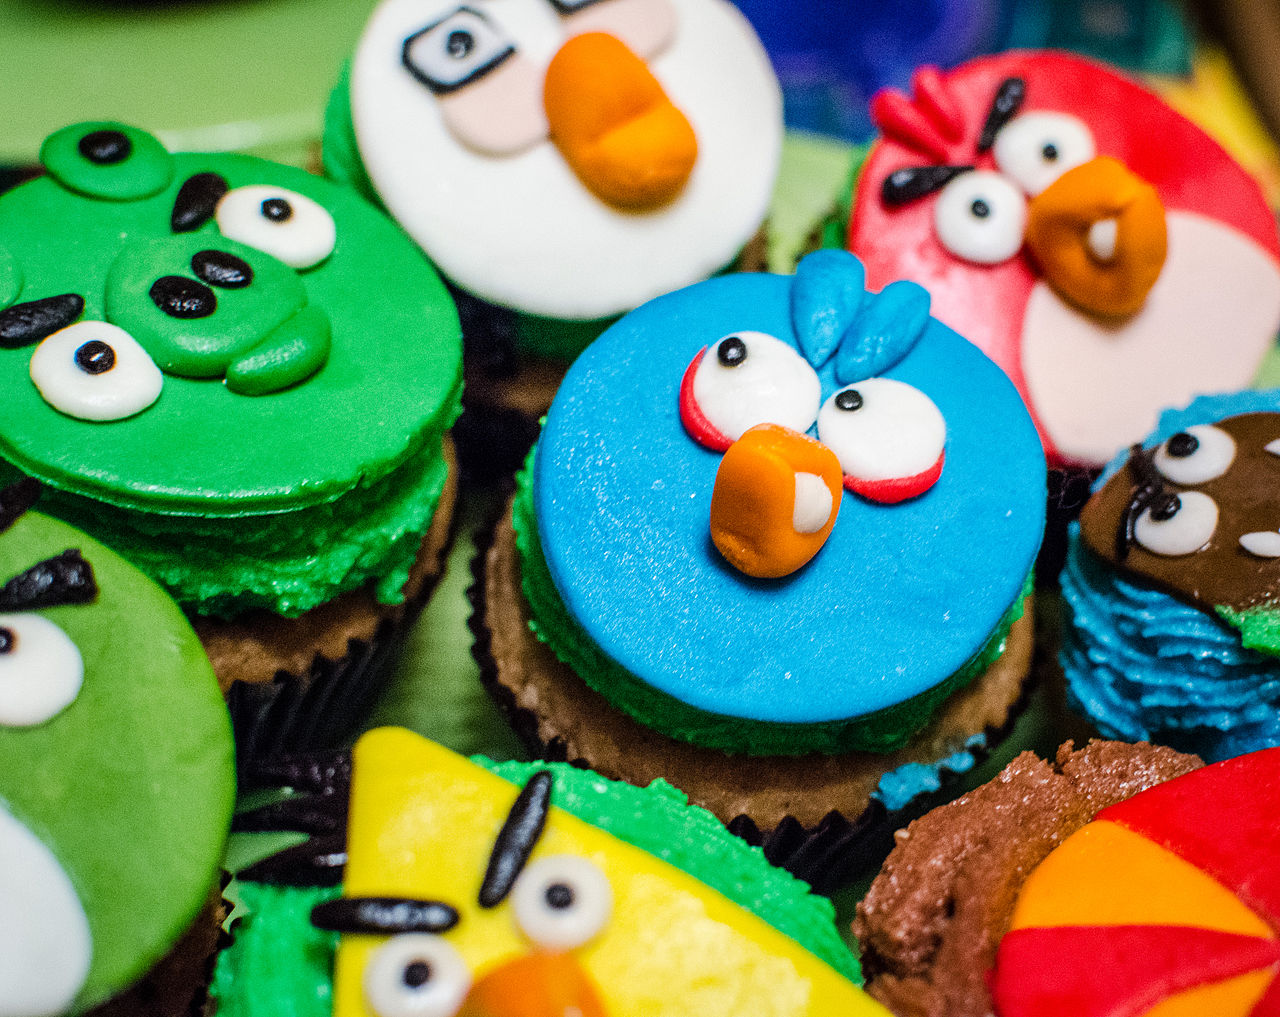 """ Gaming Cupcakes "" by  Sergey Galyonkin  is licensed under  CC BY-SA 2.0 ."